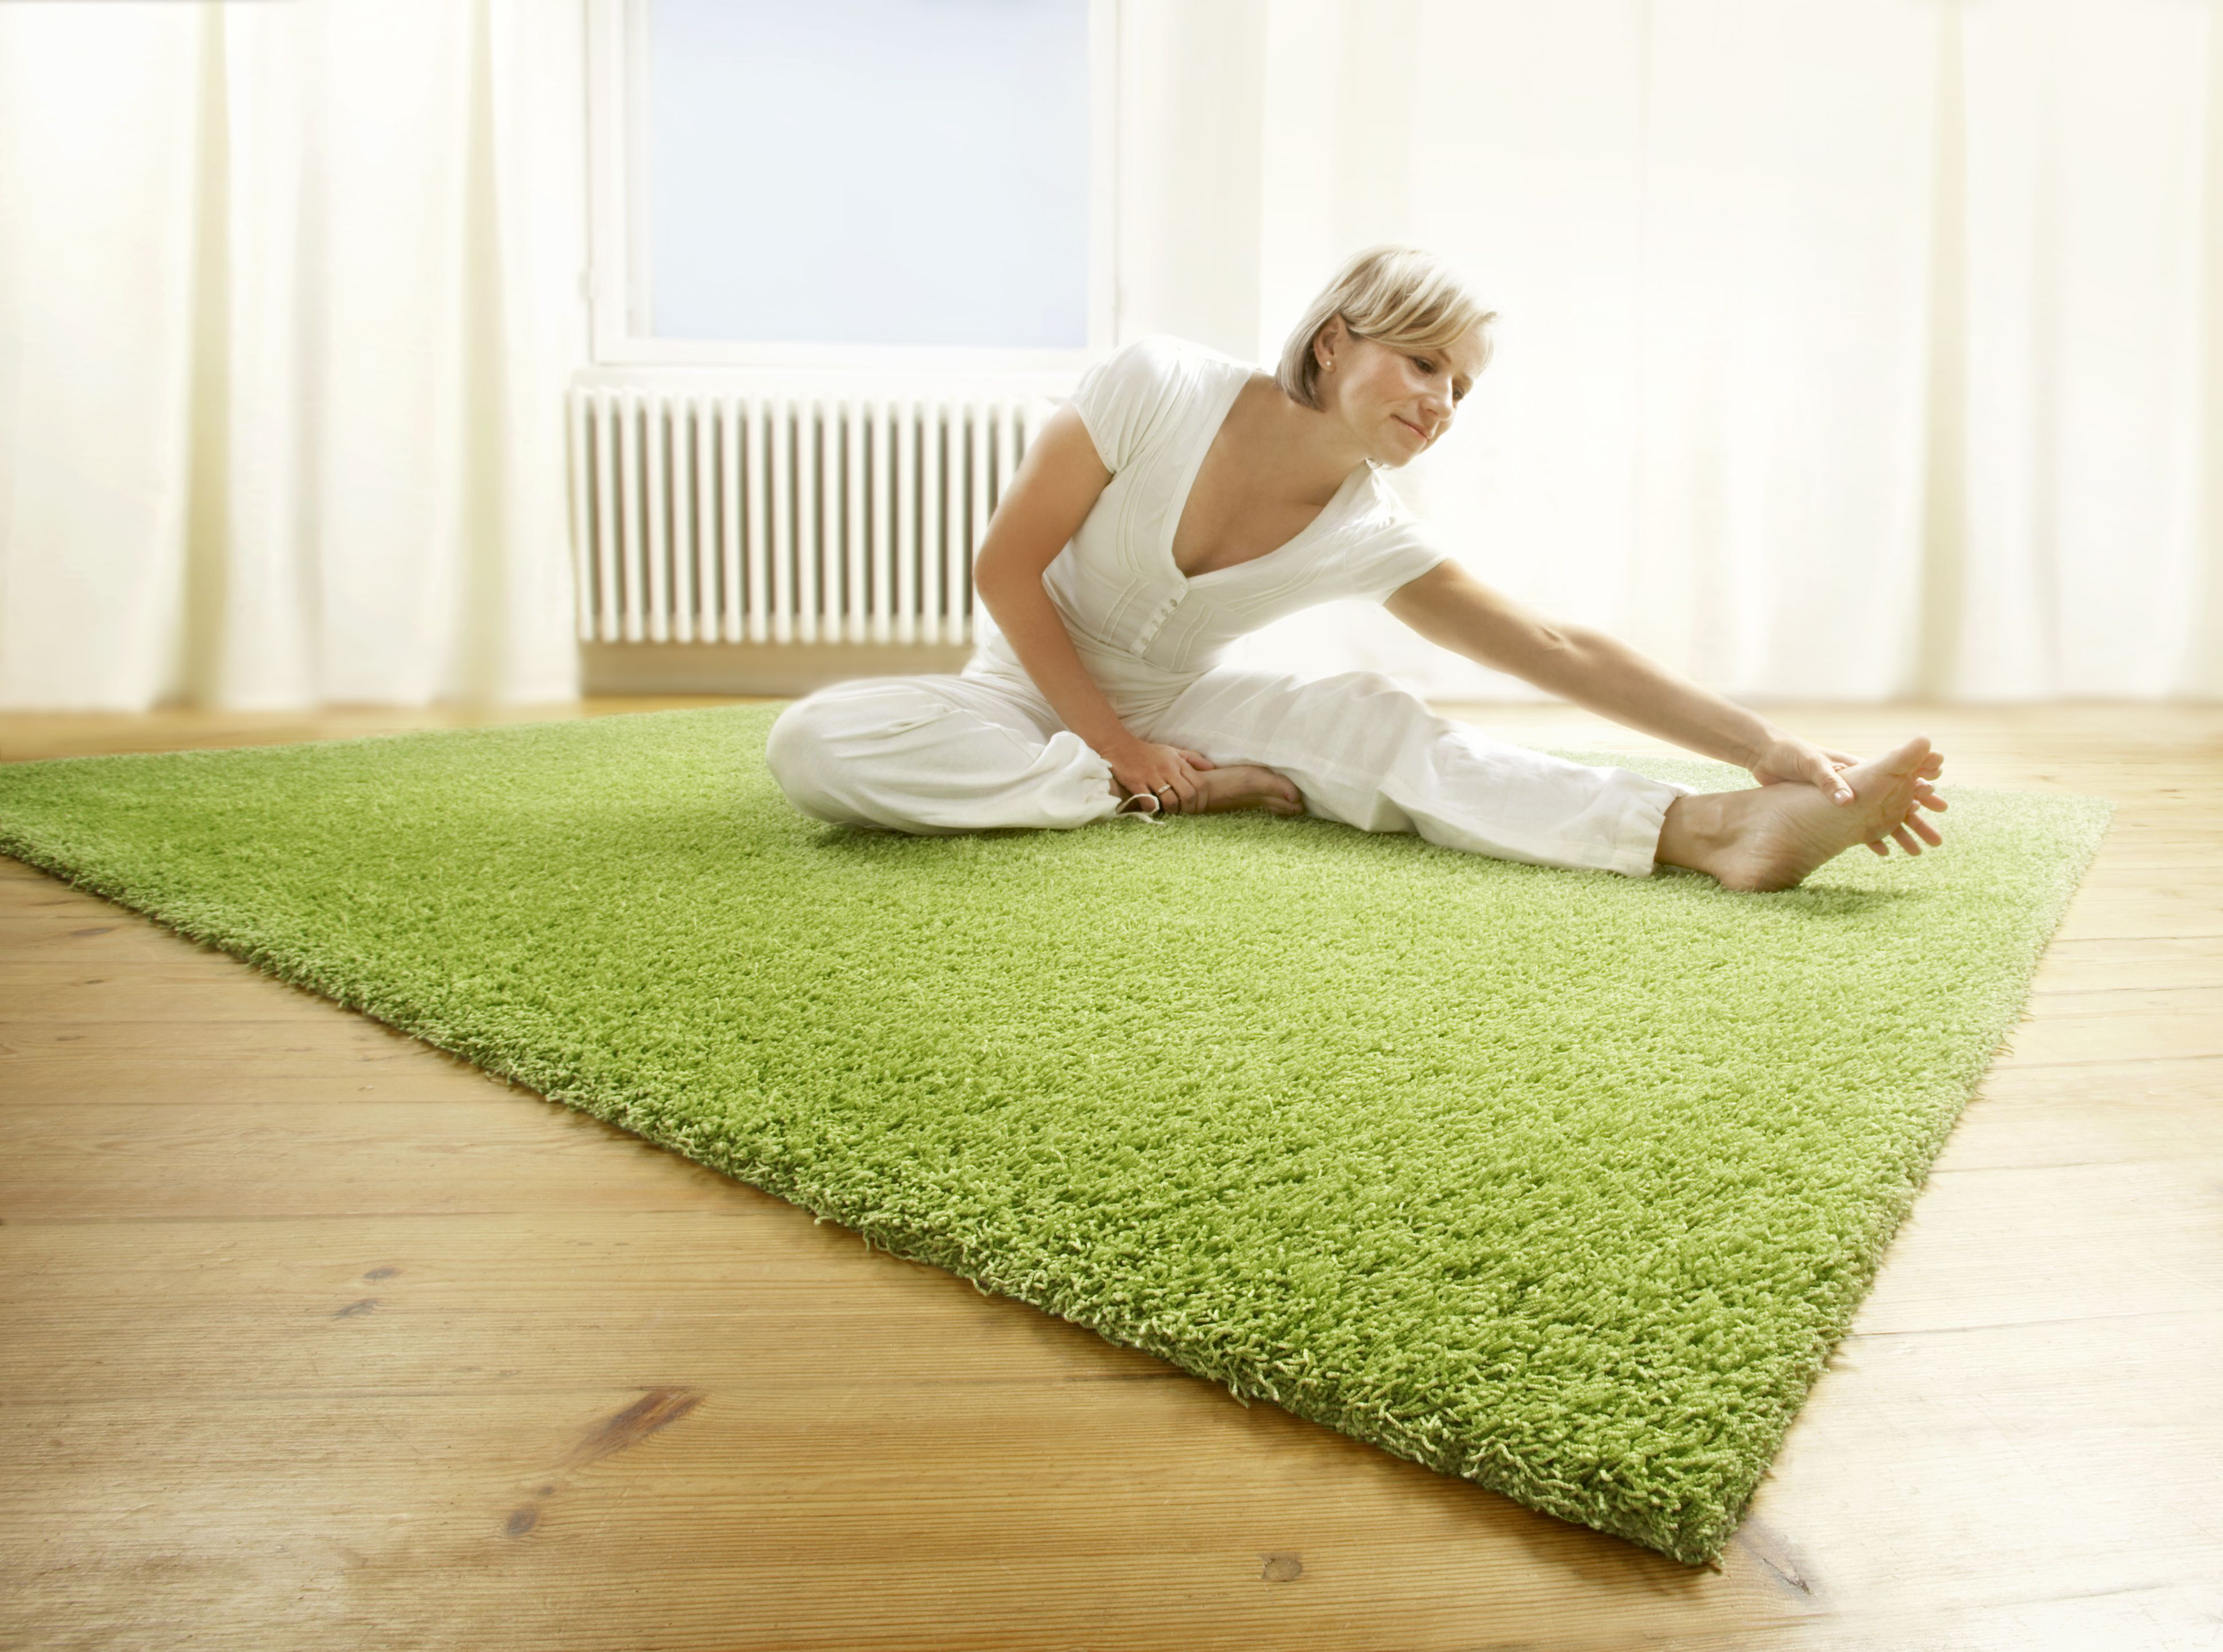 majestic rug with cuttings in bedroom | vm-carpet fantastic rug, Badezimmer ideen